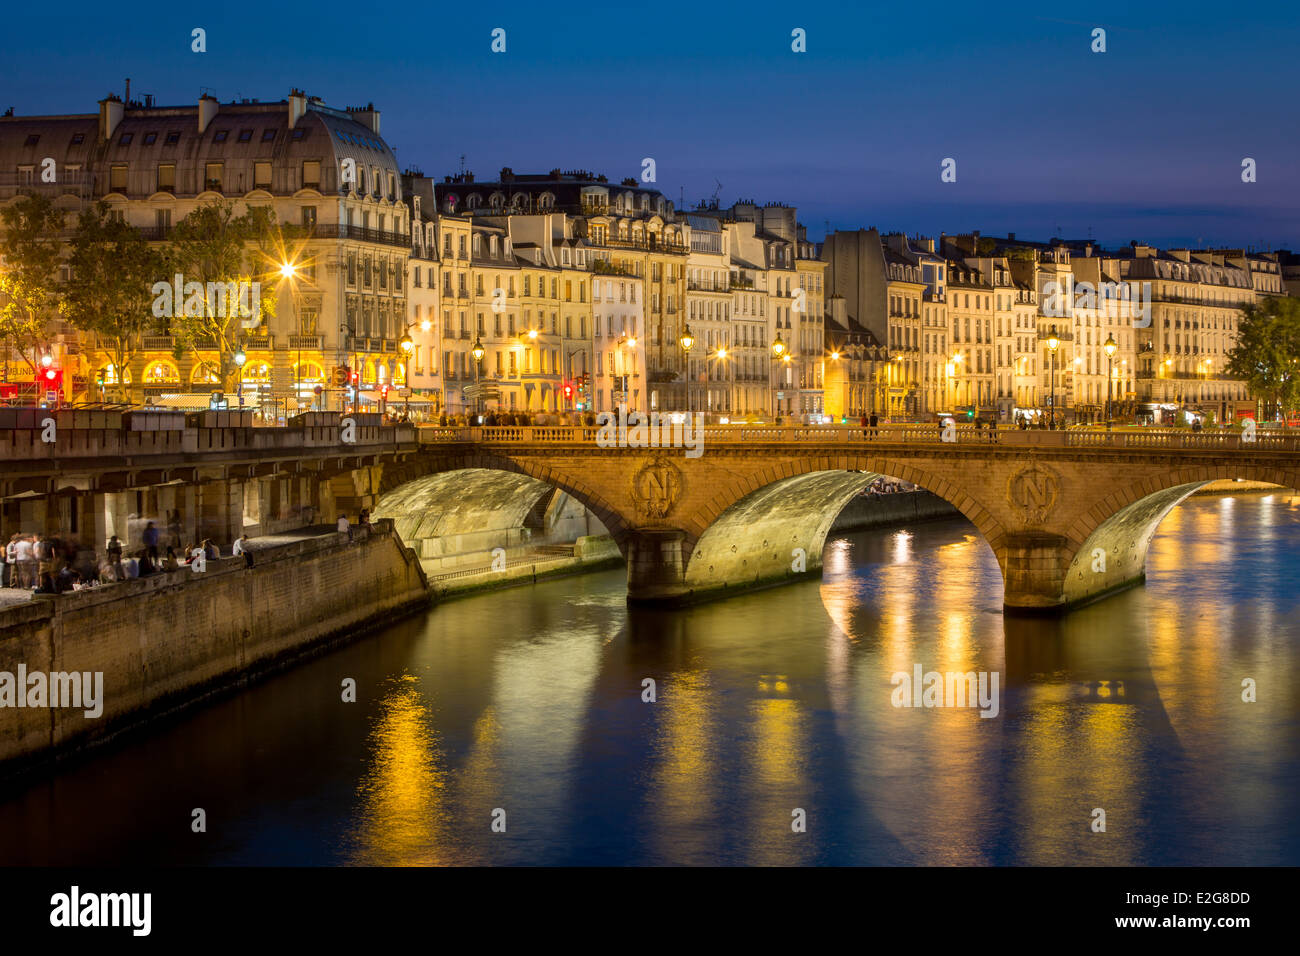 Pont Neuf and the buildings along River Seine, Paris France - Stock Image